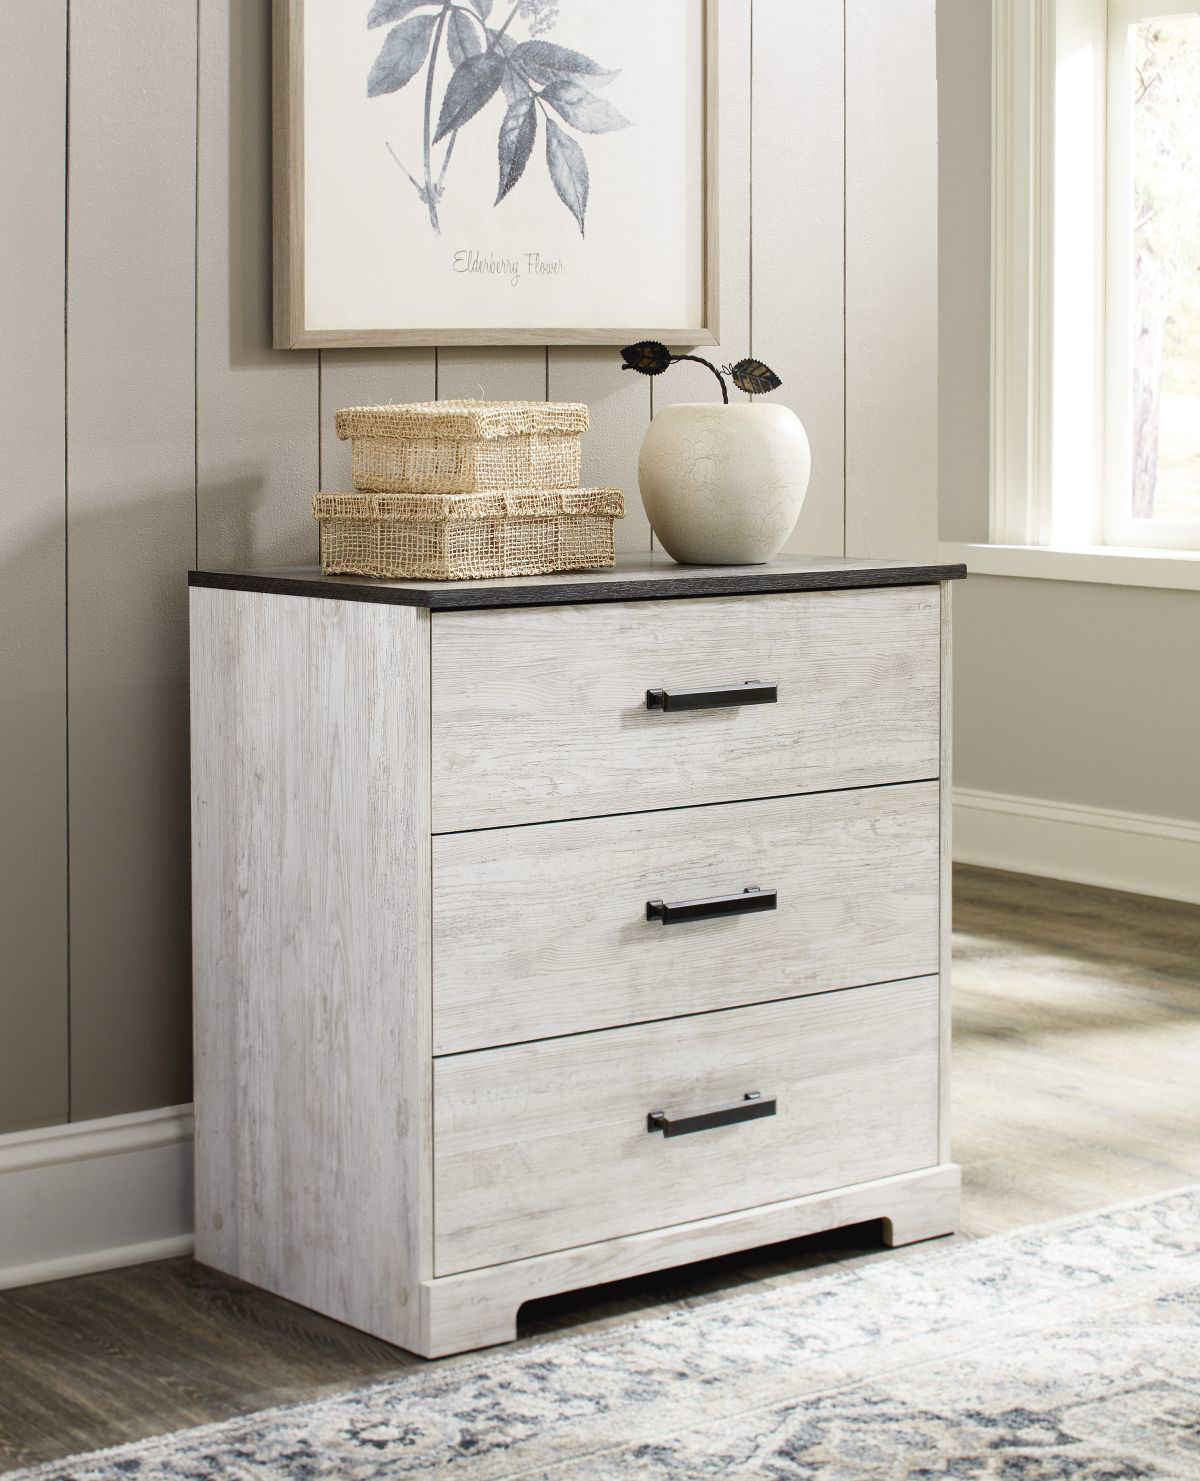 Picture of Shawburn Chest of Drawers